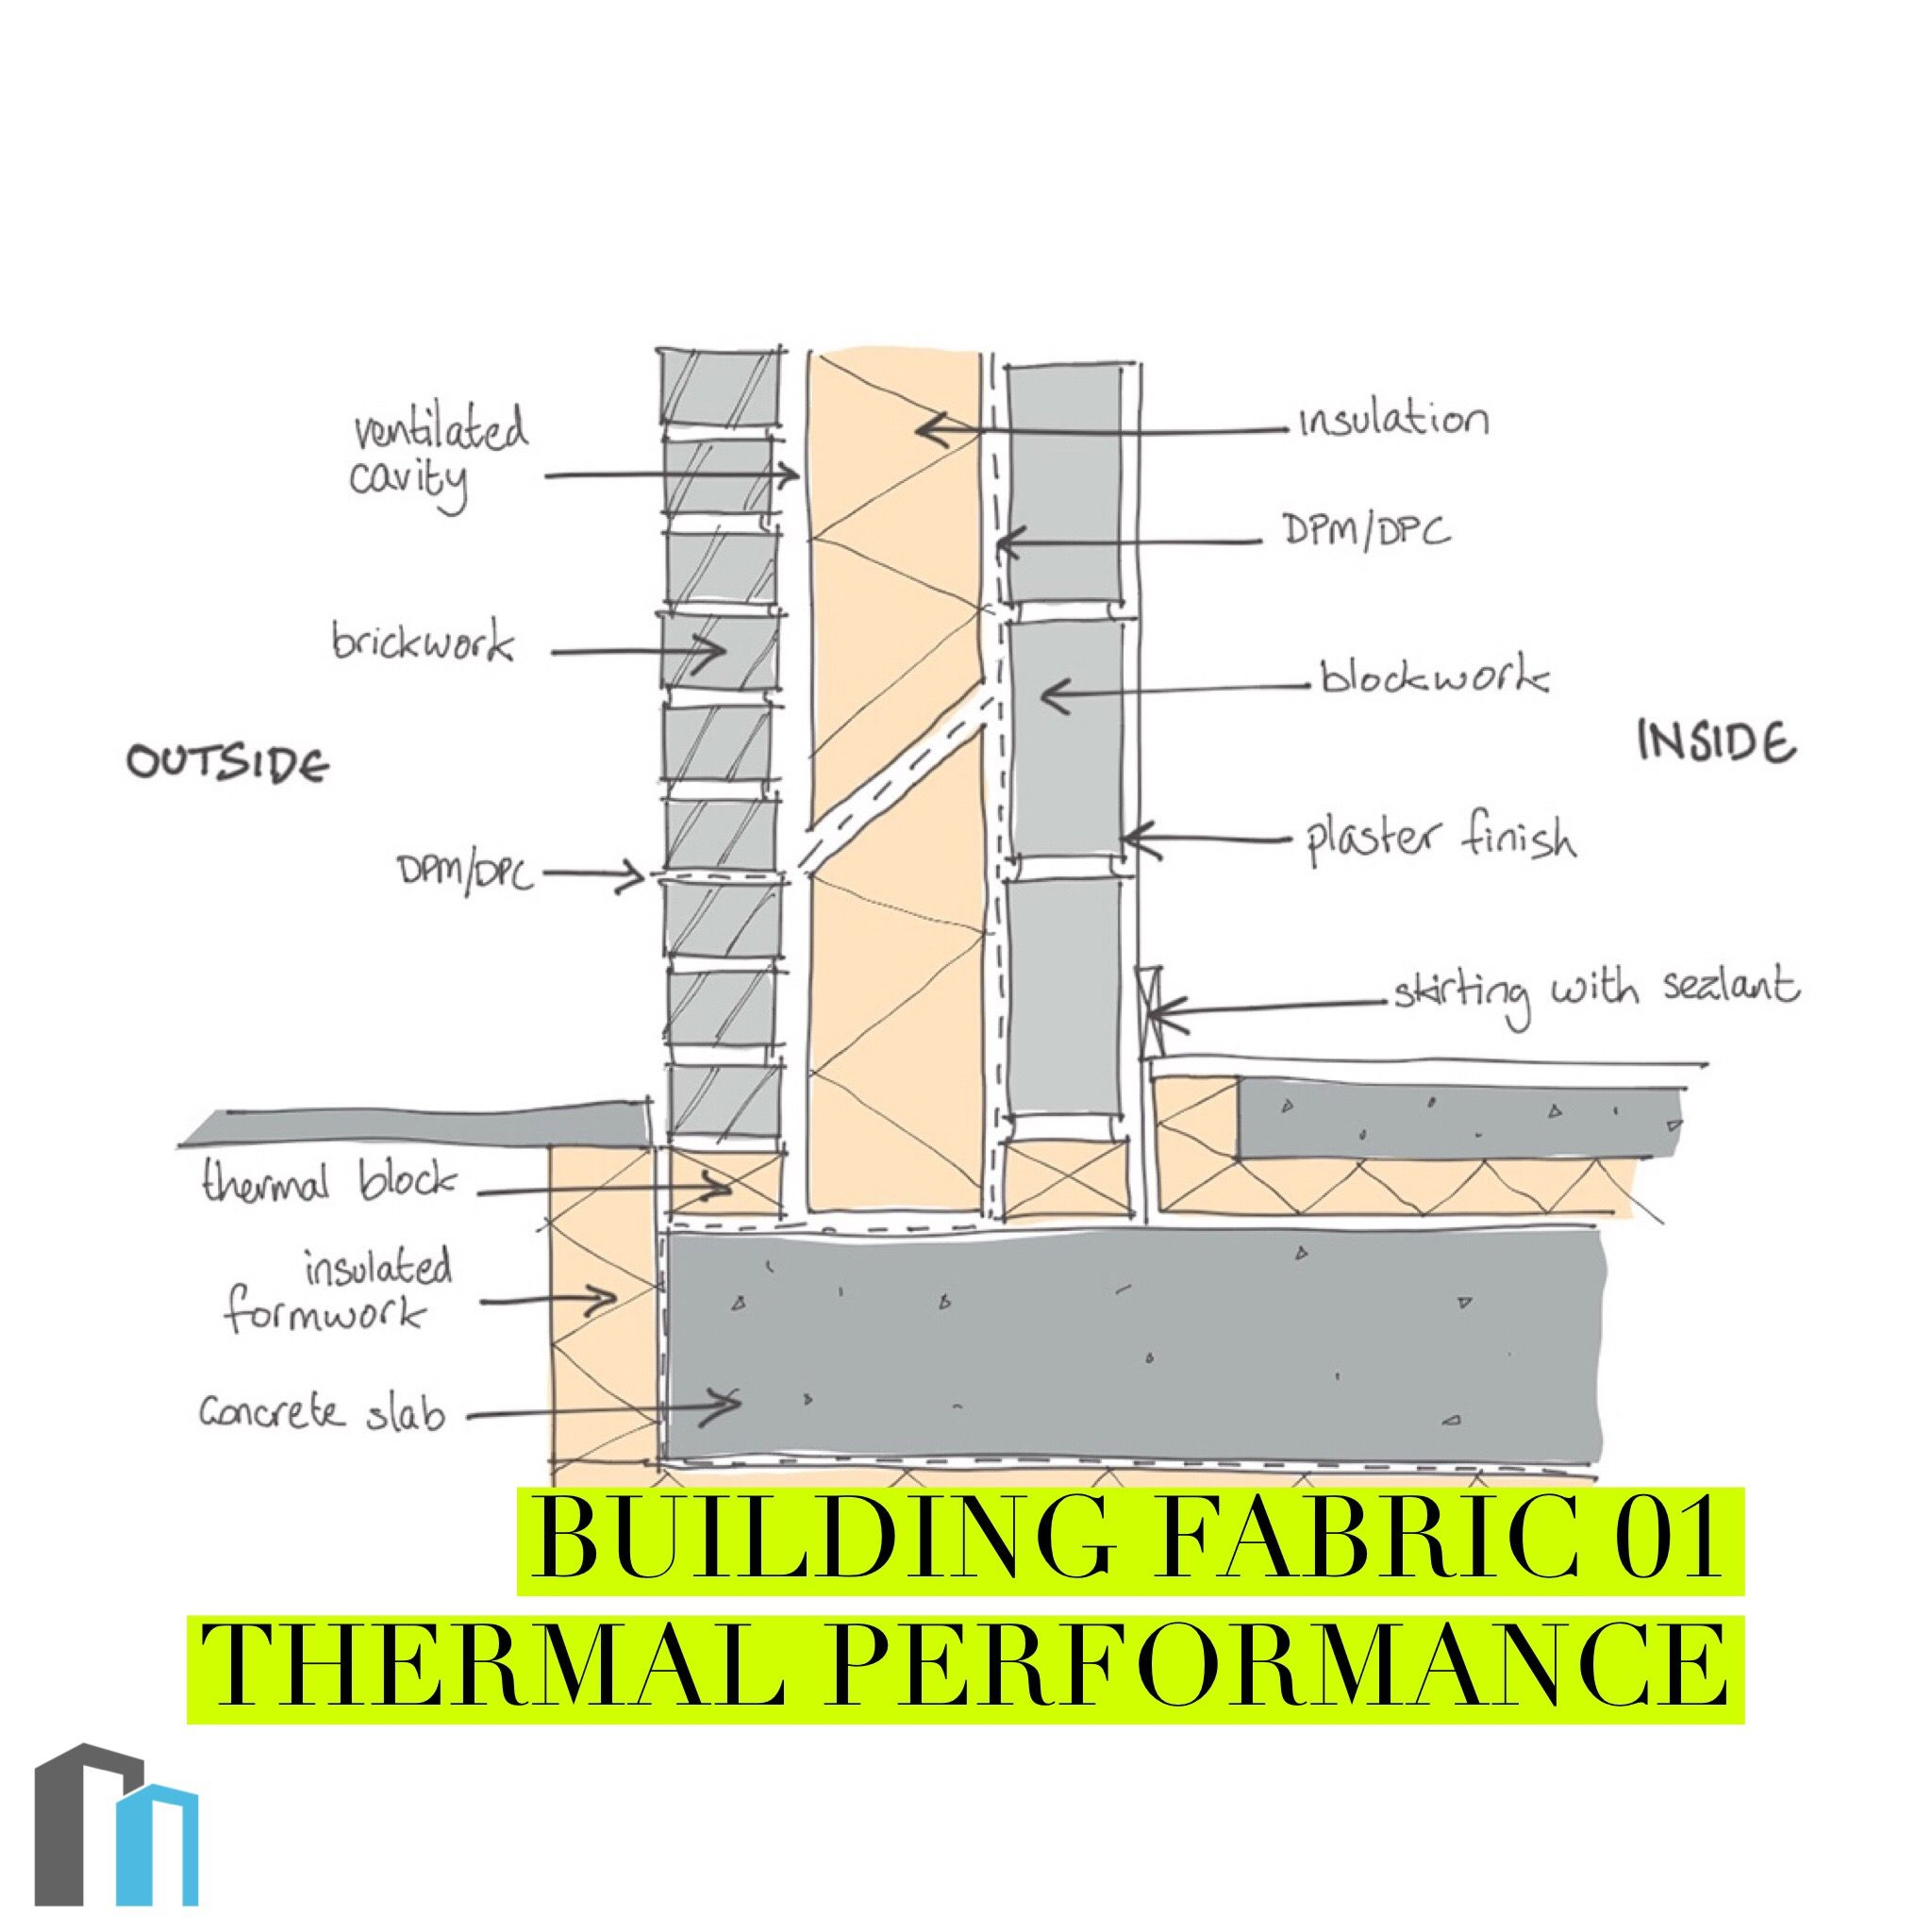 Building Fabric 01 Thermal Performance Wellness Design Thermal Insulation Materials